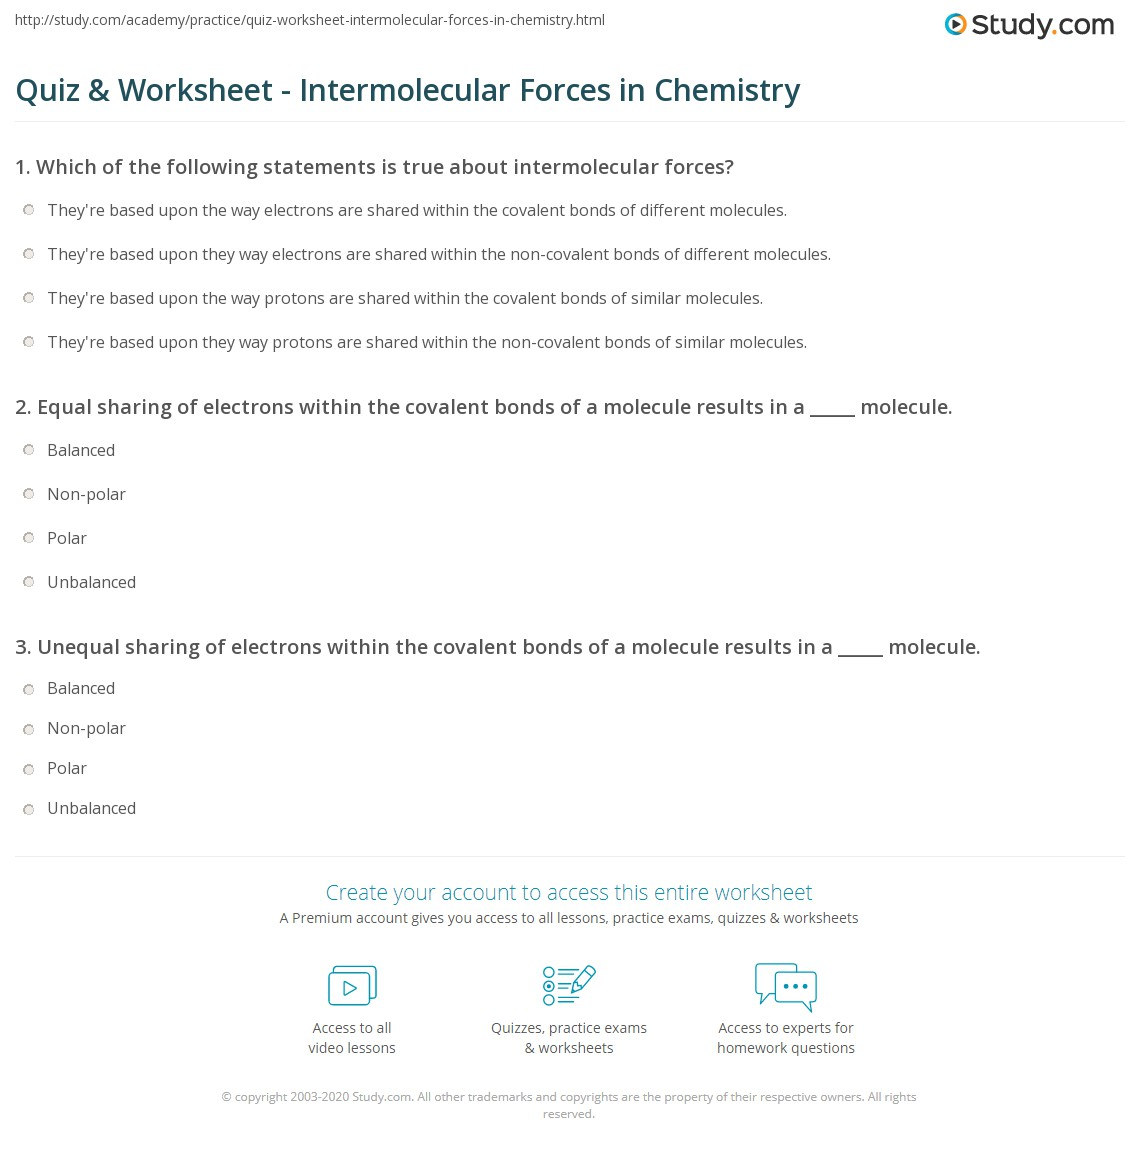 Quiz & Worksheet - Intermolecular Forces in Chemistry | Study.com